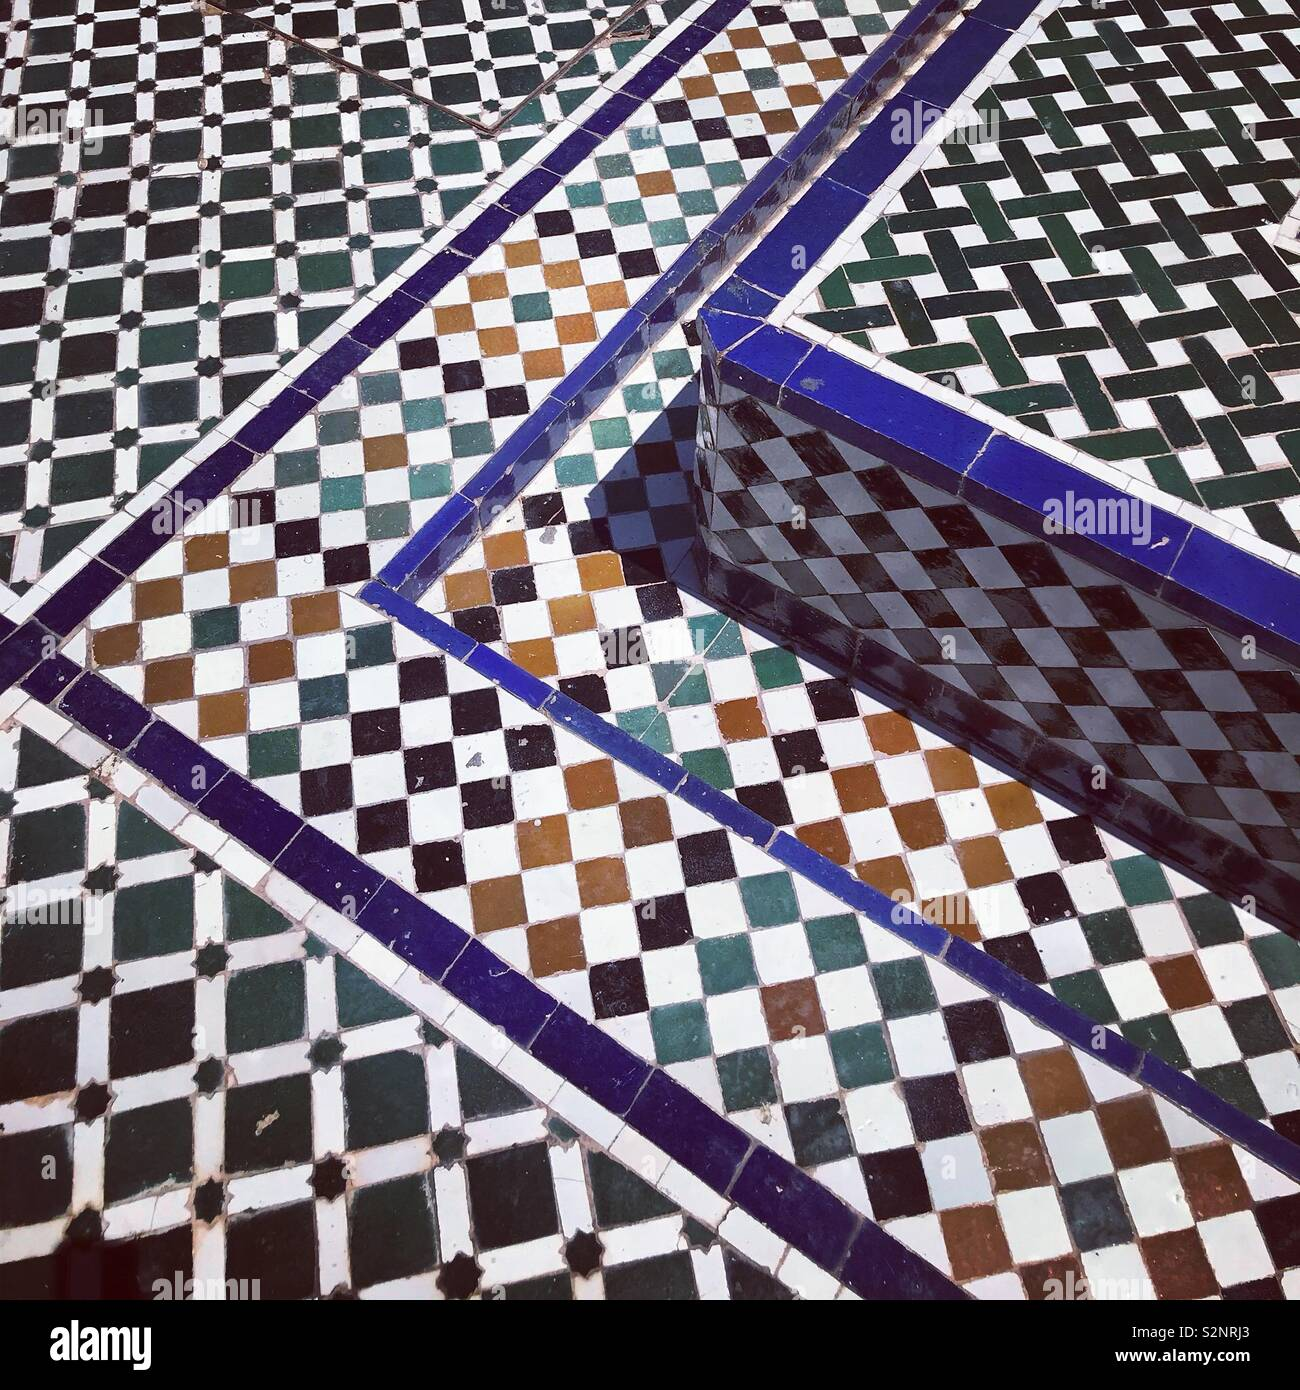 Tiled floor of the Bahia palace in Morocco marrakech North Africa Stock Photo